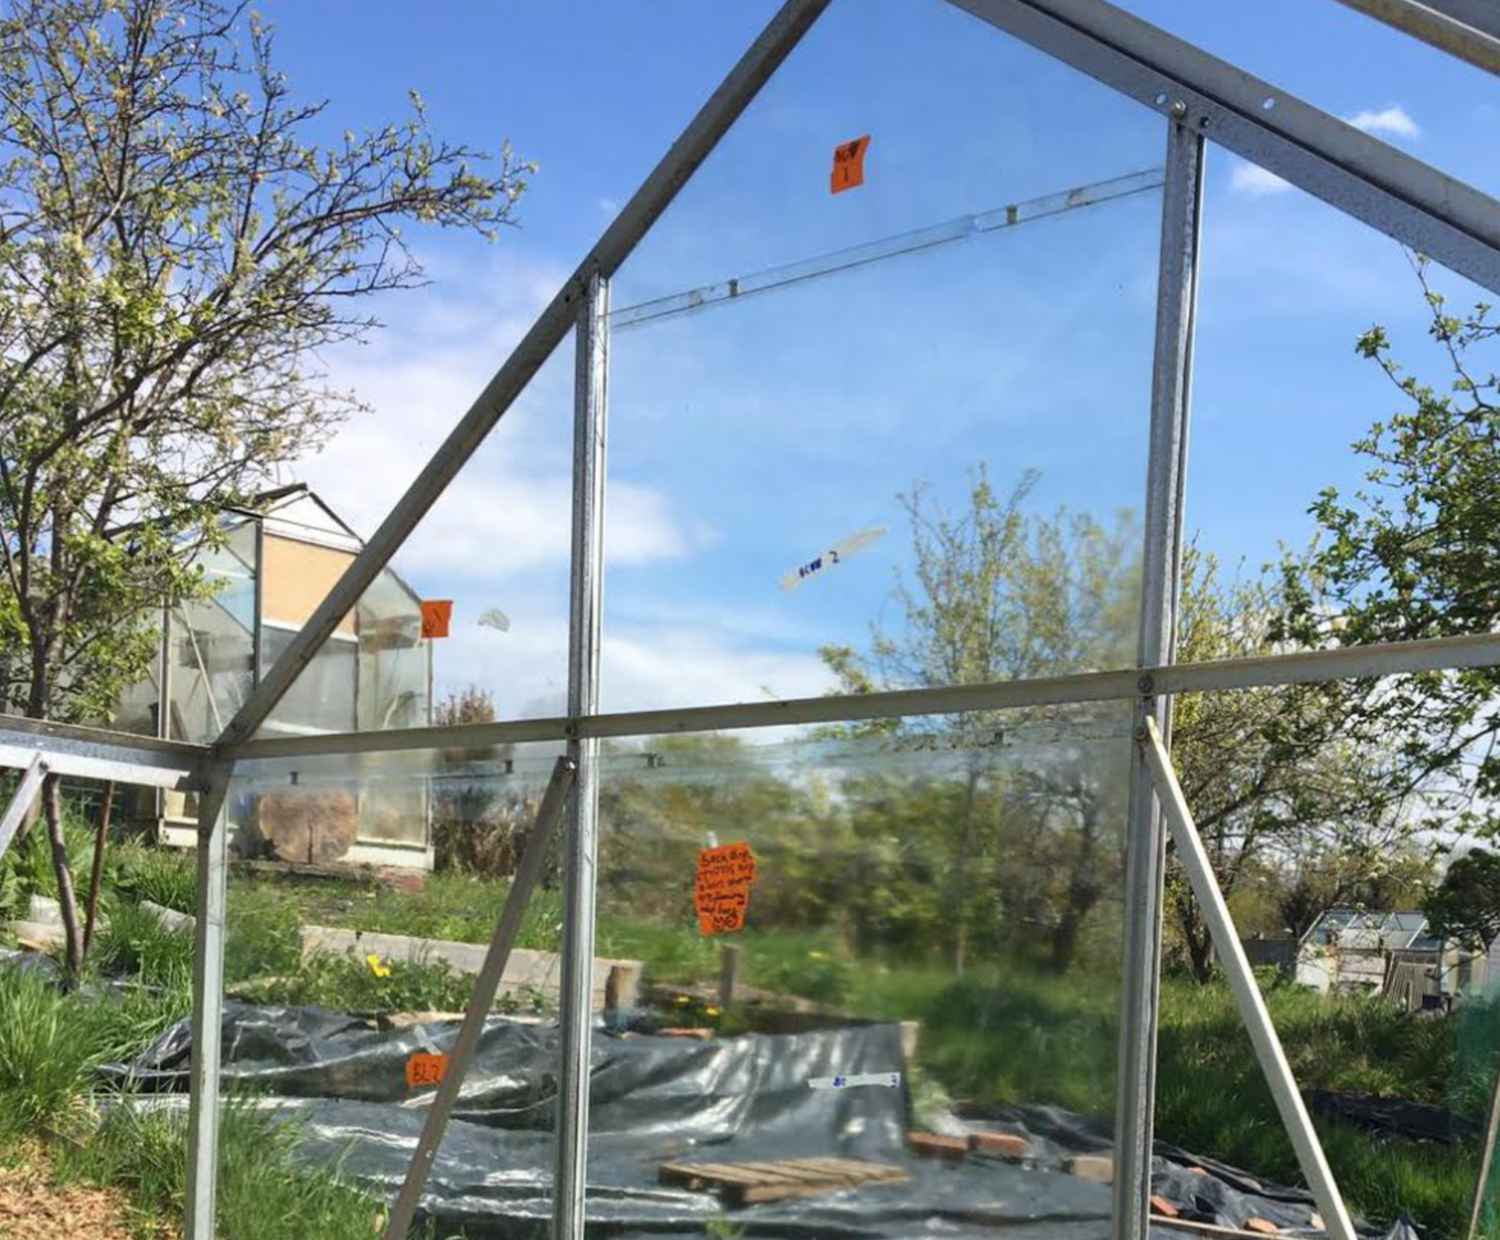 Ancient Champion: There's Glass in the Greenhouse. And Stuff